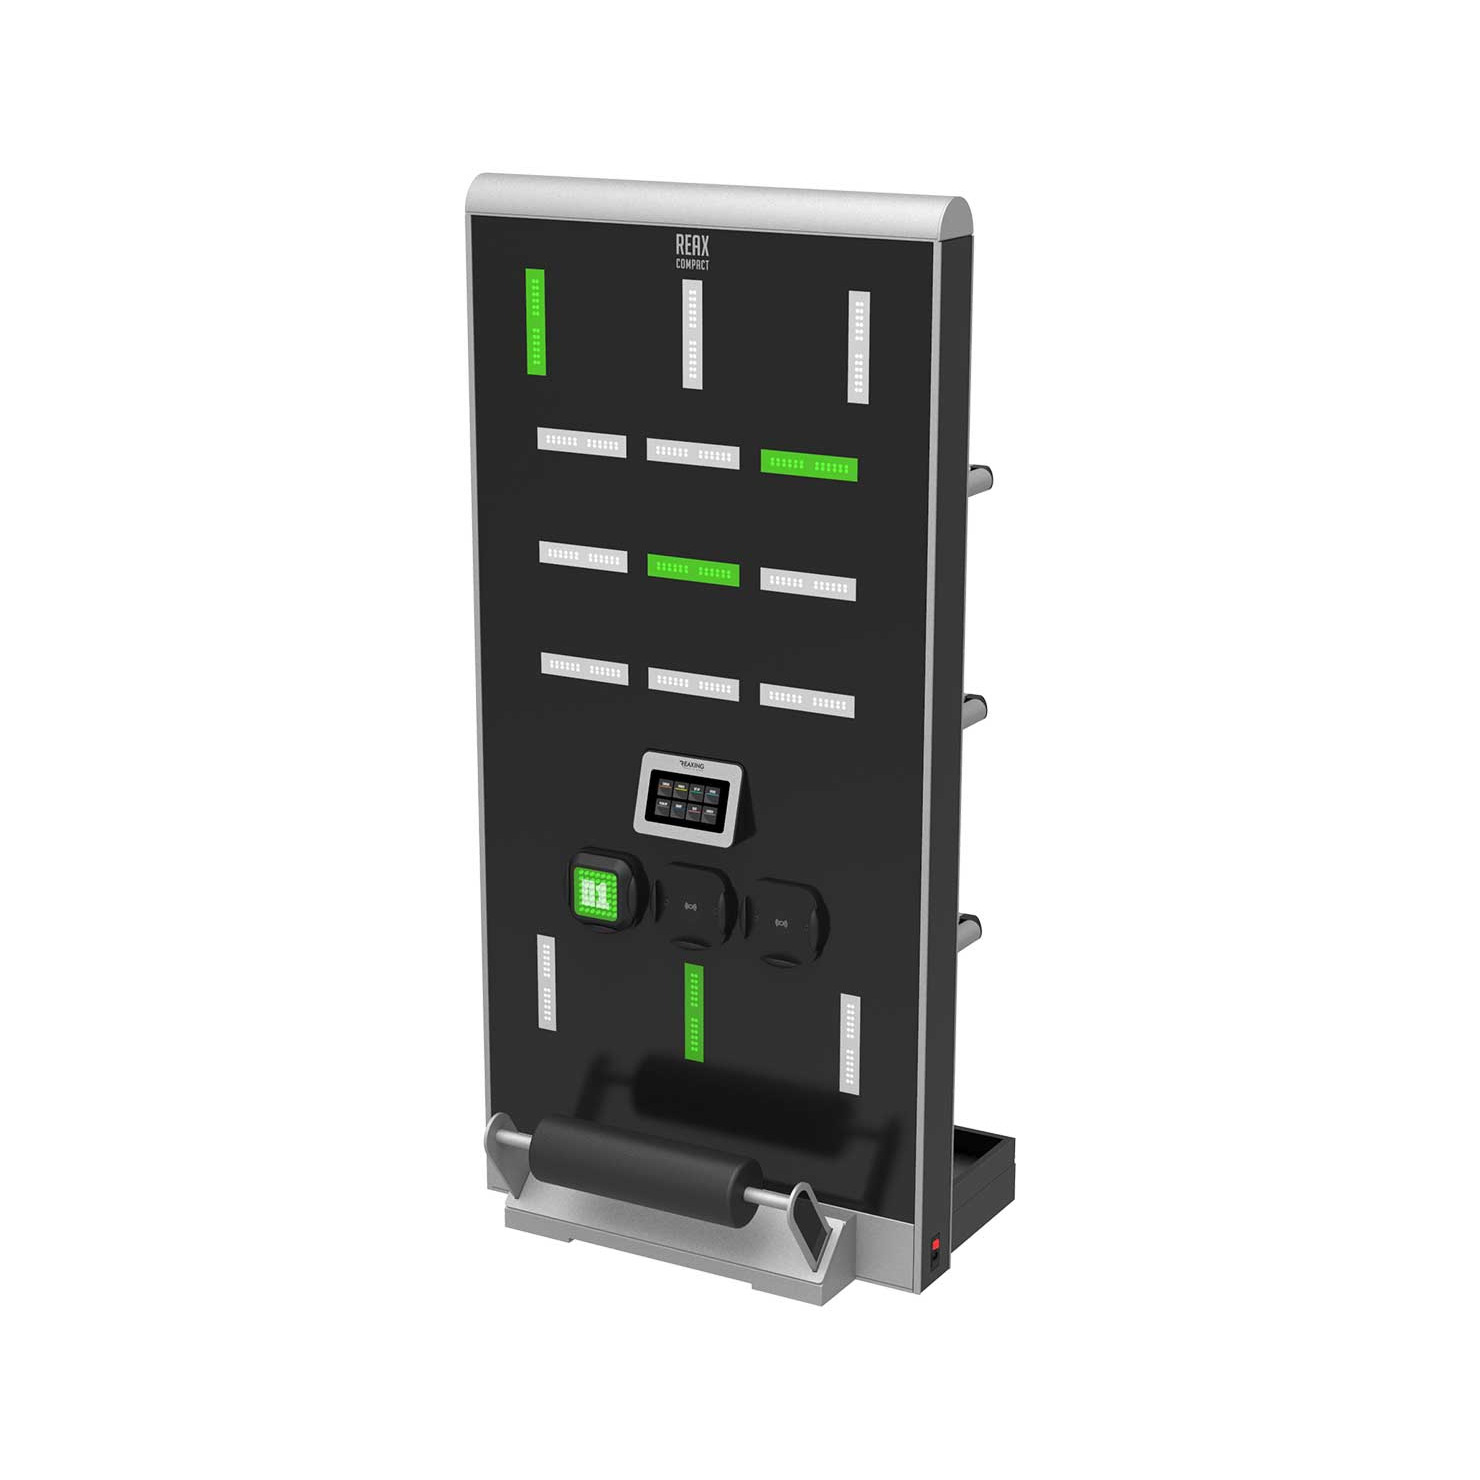 REAX COMPACT - WALL 1 SATELLITE - SELF STANDING RX1650